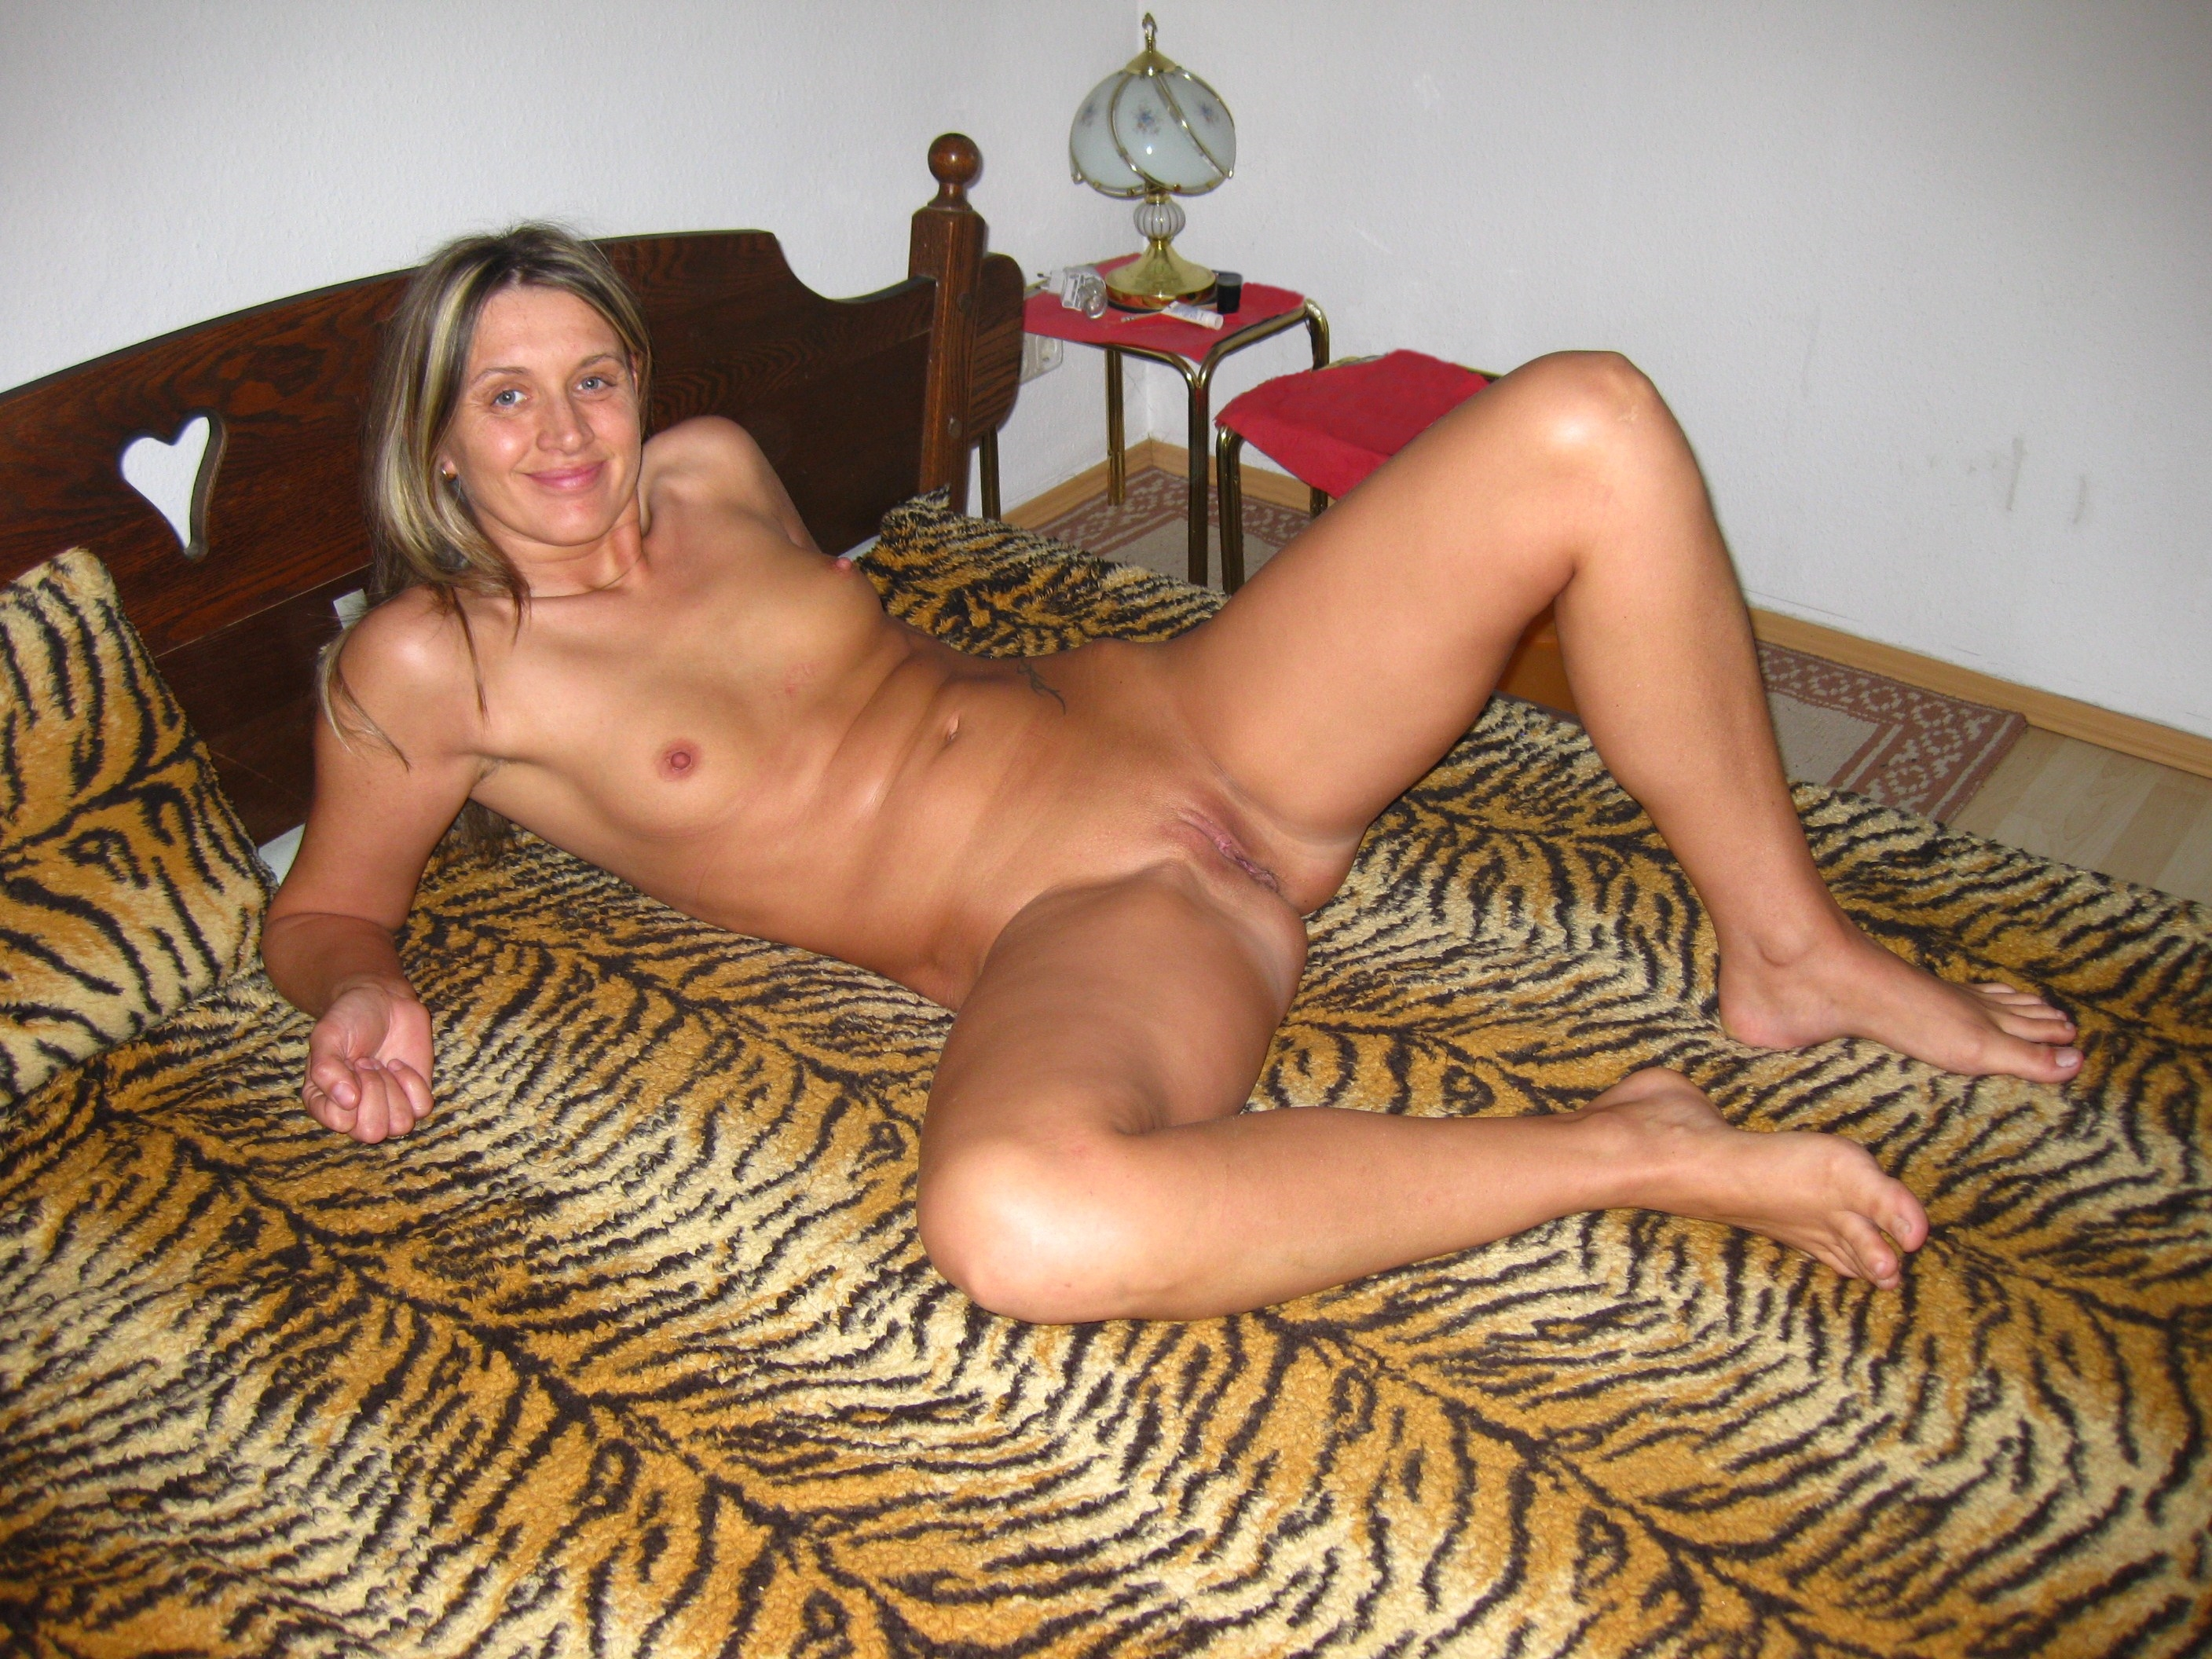 Older and german women nude pussy male